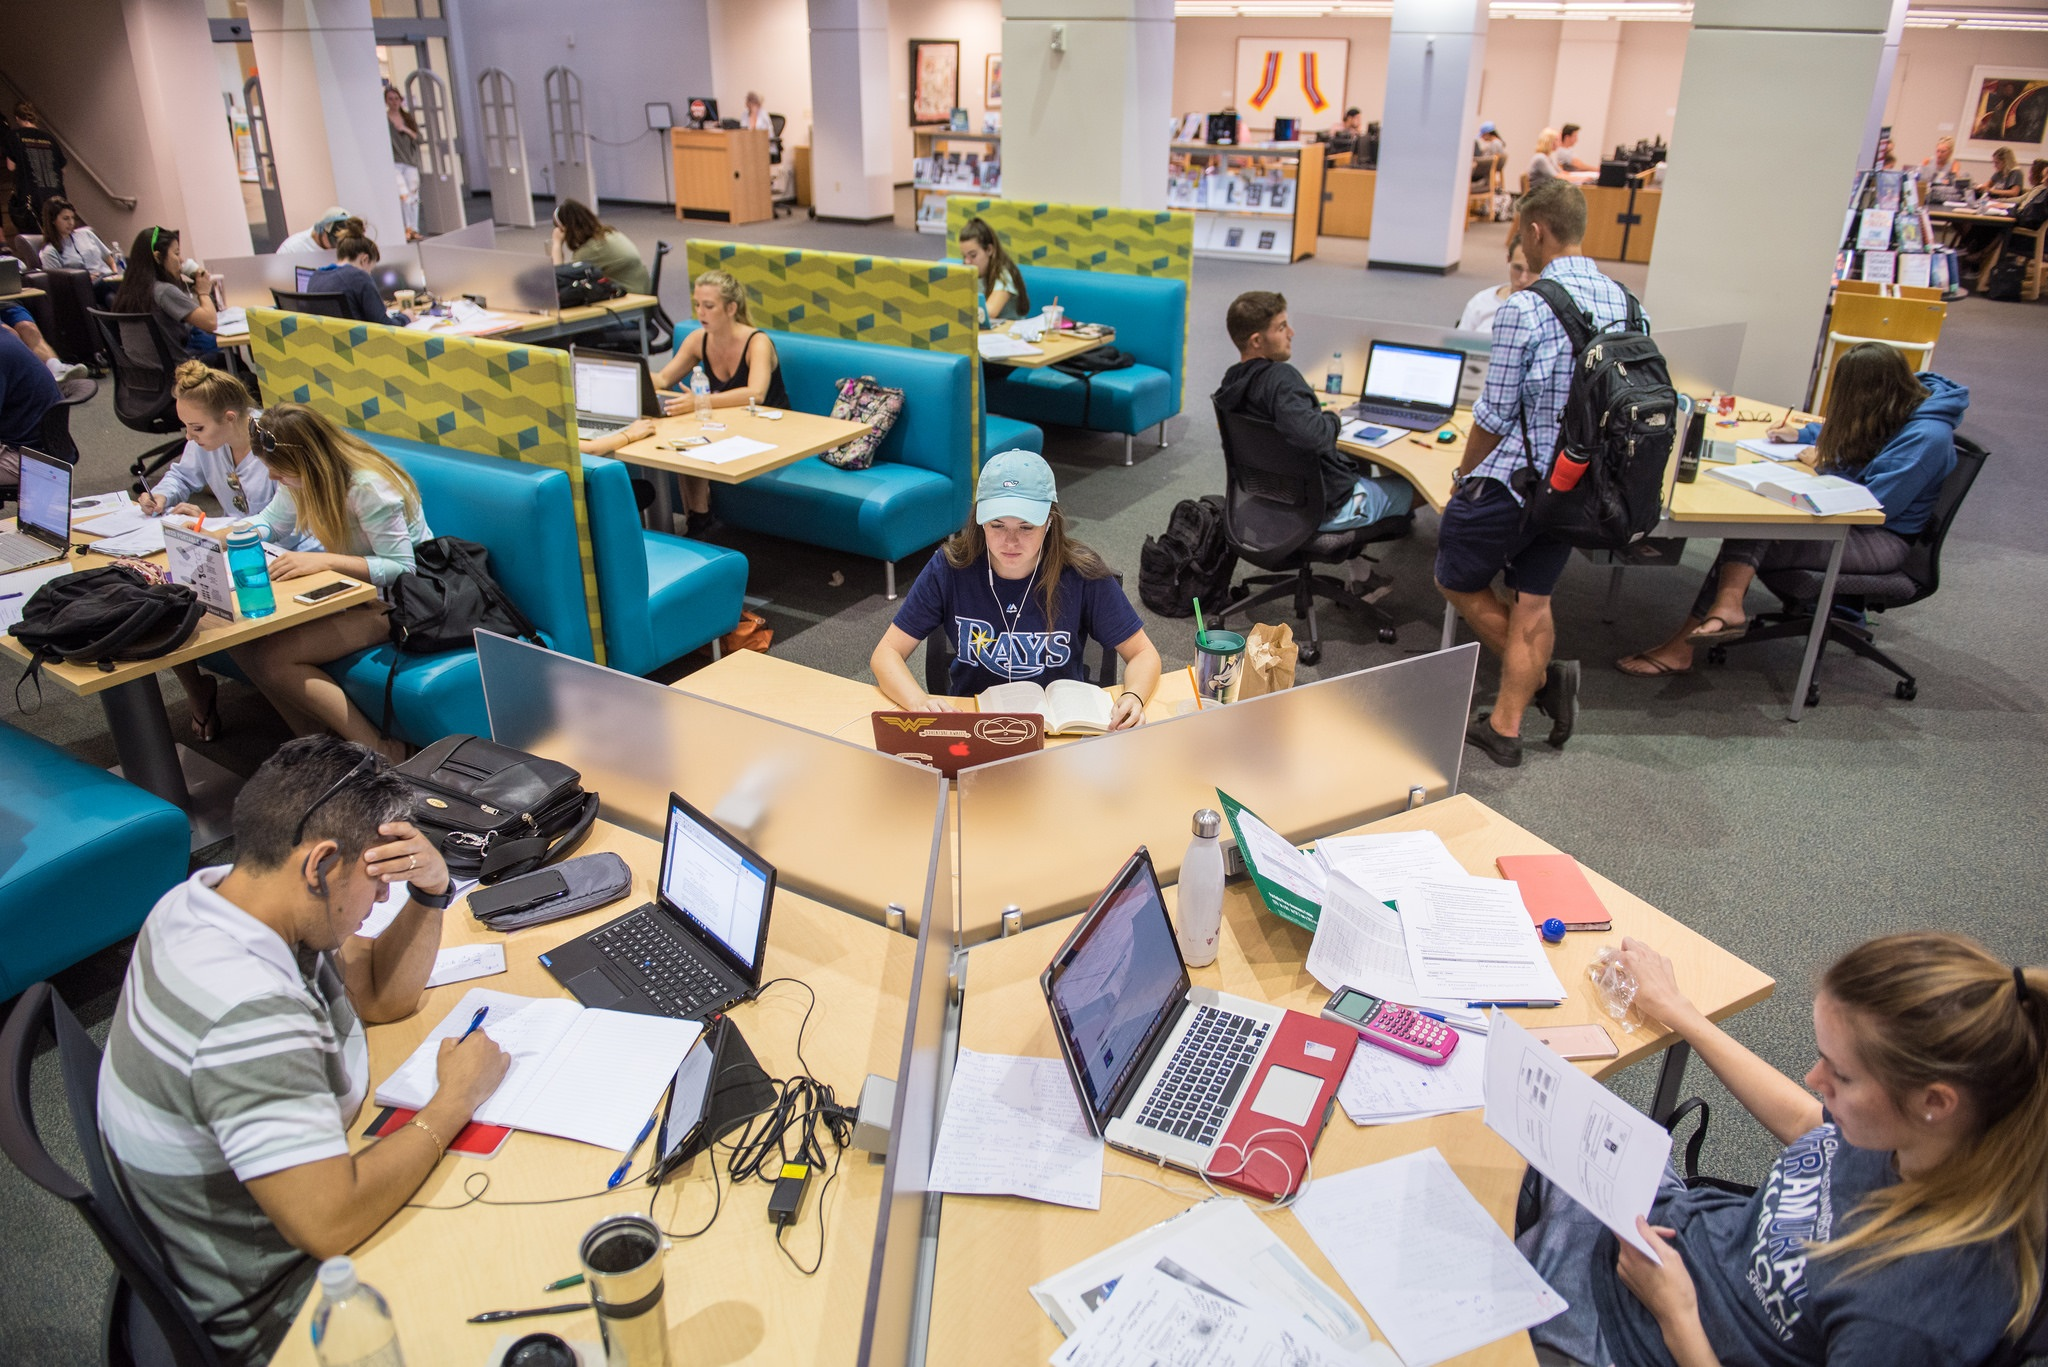 library west common area 1st floor